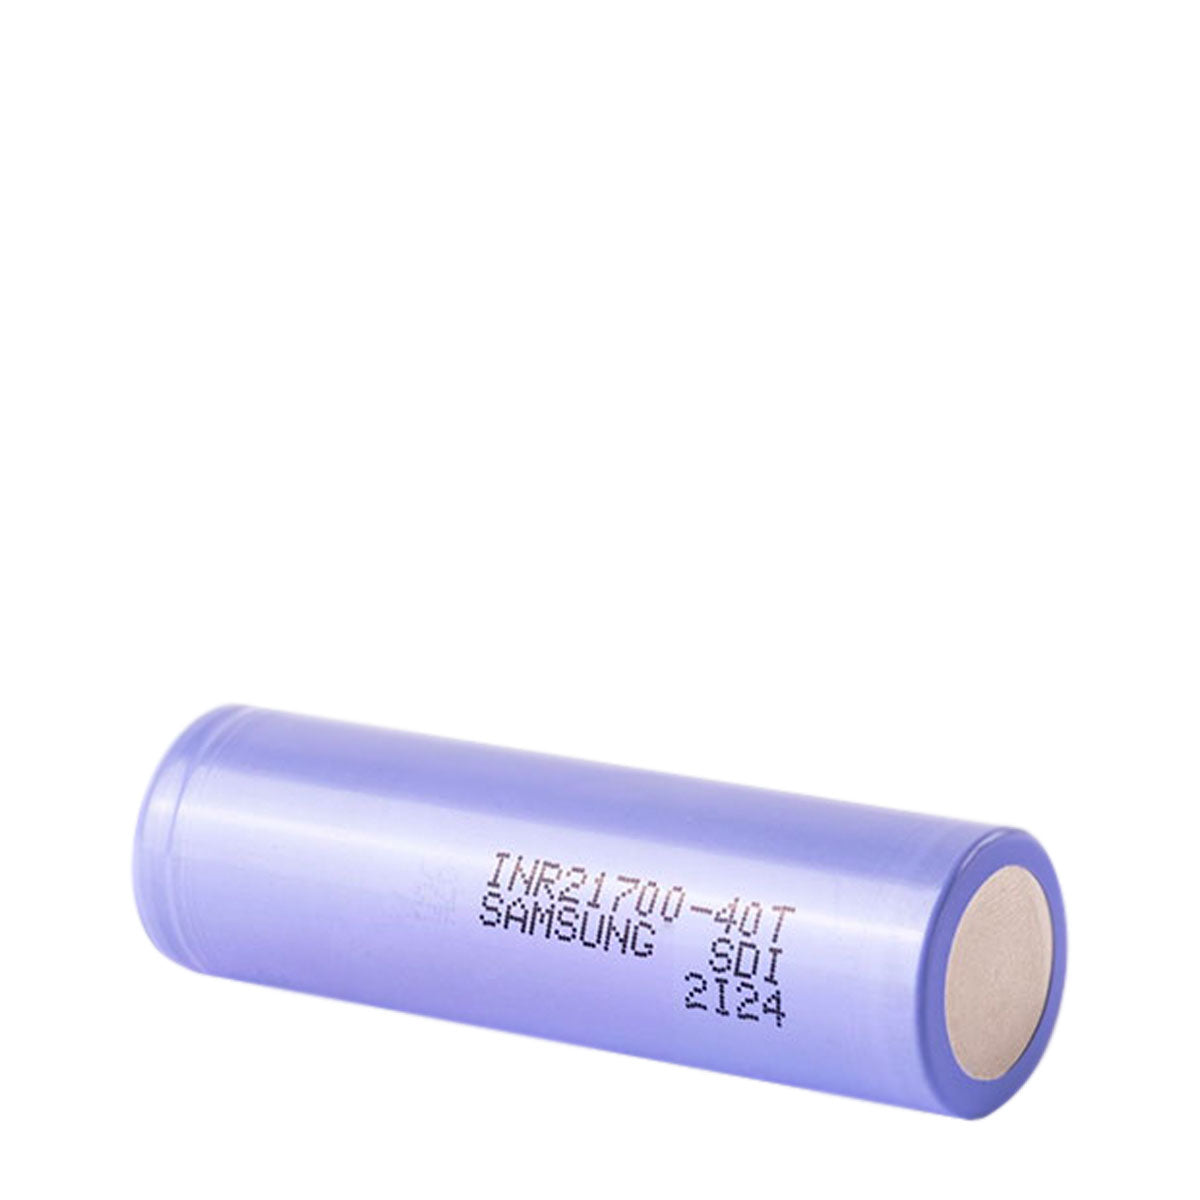 Samsung 40T 21700 Battery 4000mAh, Samsung, Batteries/Chargers, Vape360, Canada